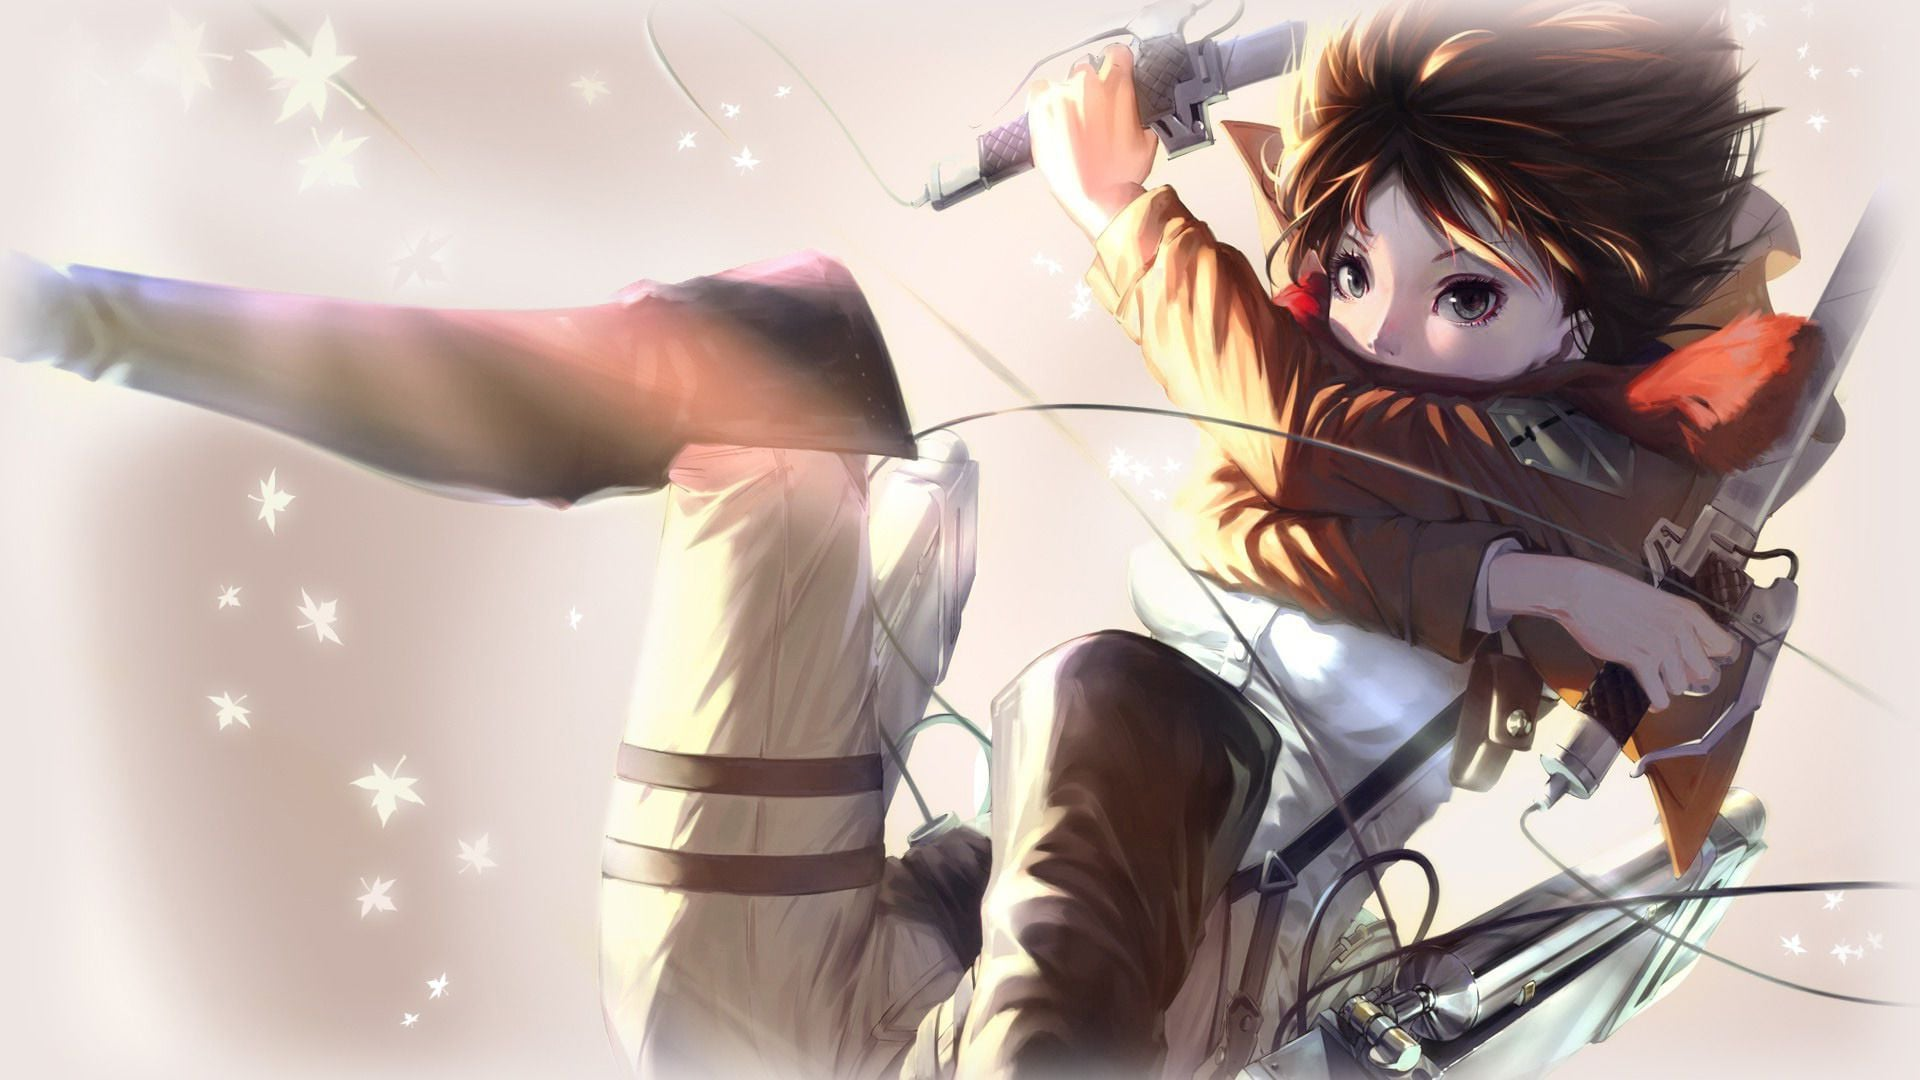 35 mikasa ackerman wallpapers hd download - Anime backgrounds hd 1920x1080 ...